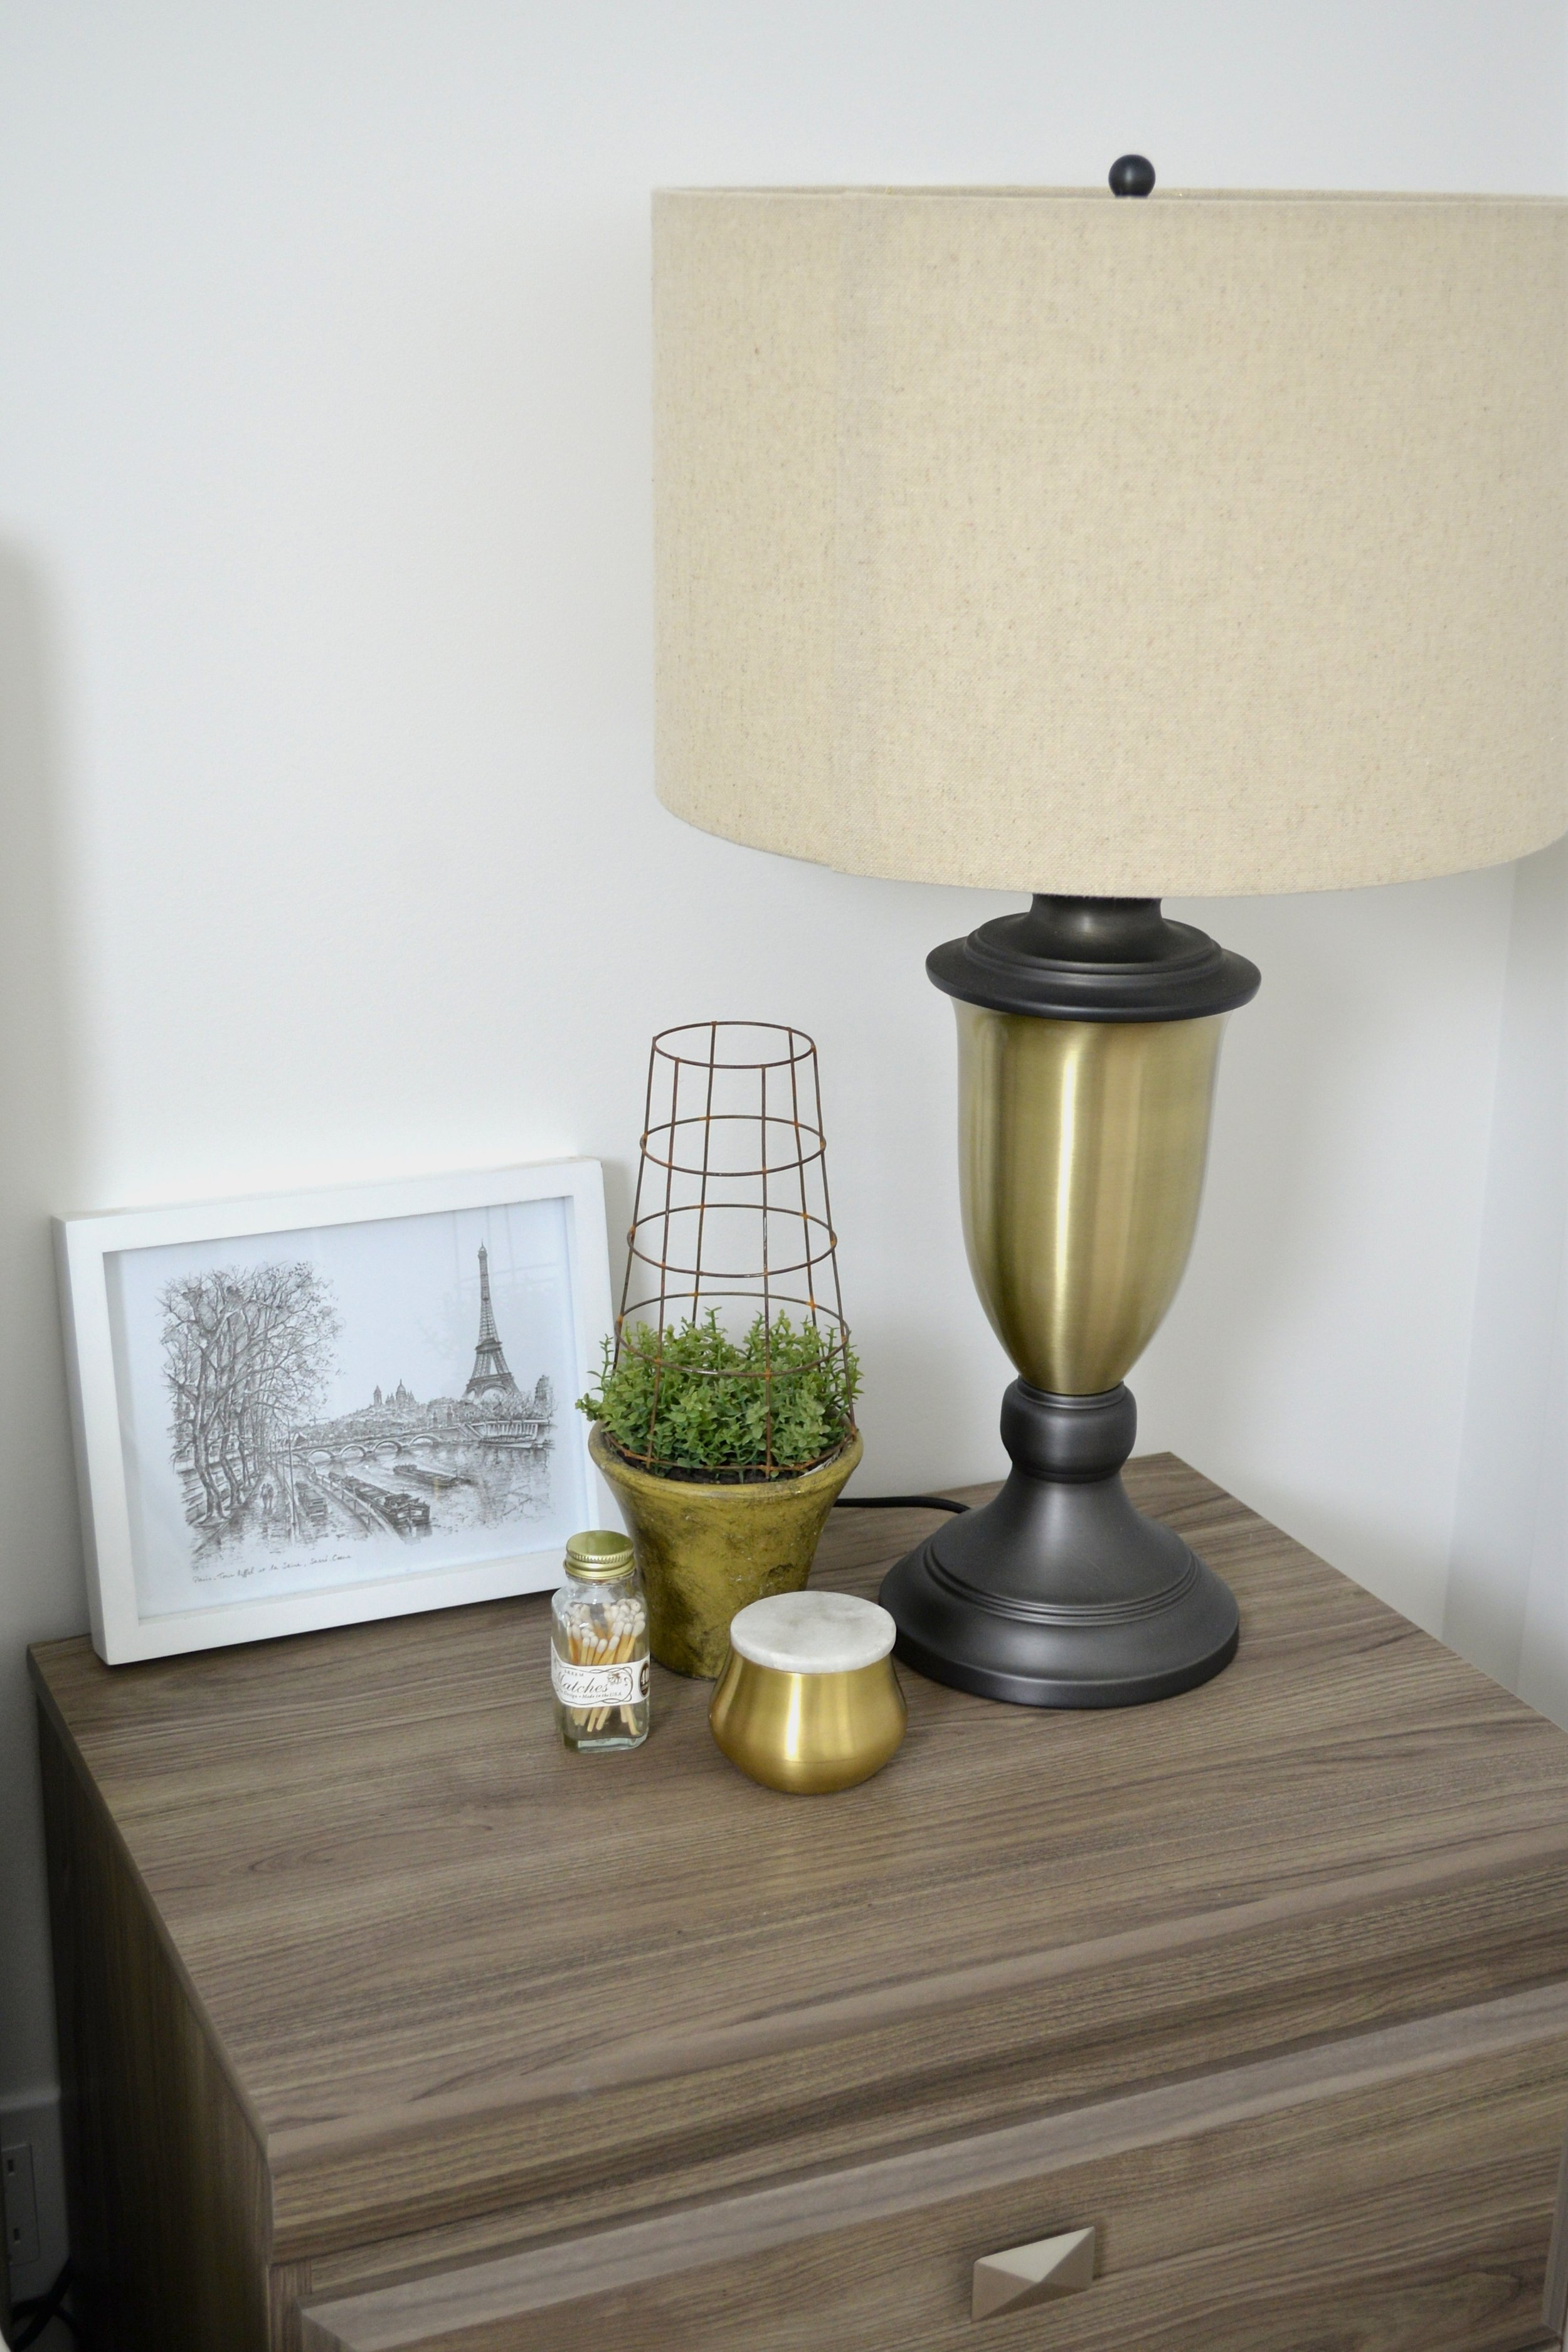 styled bedside table